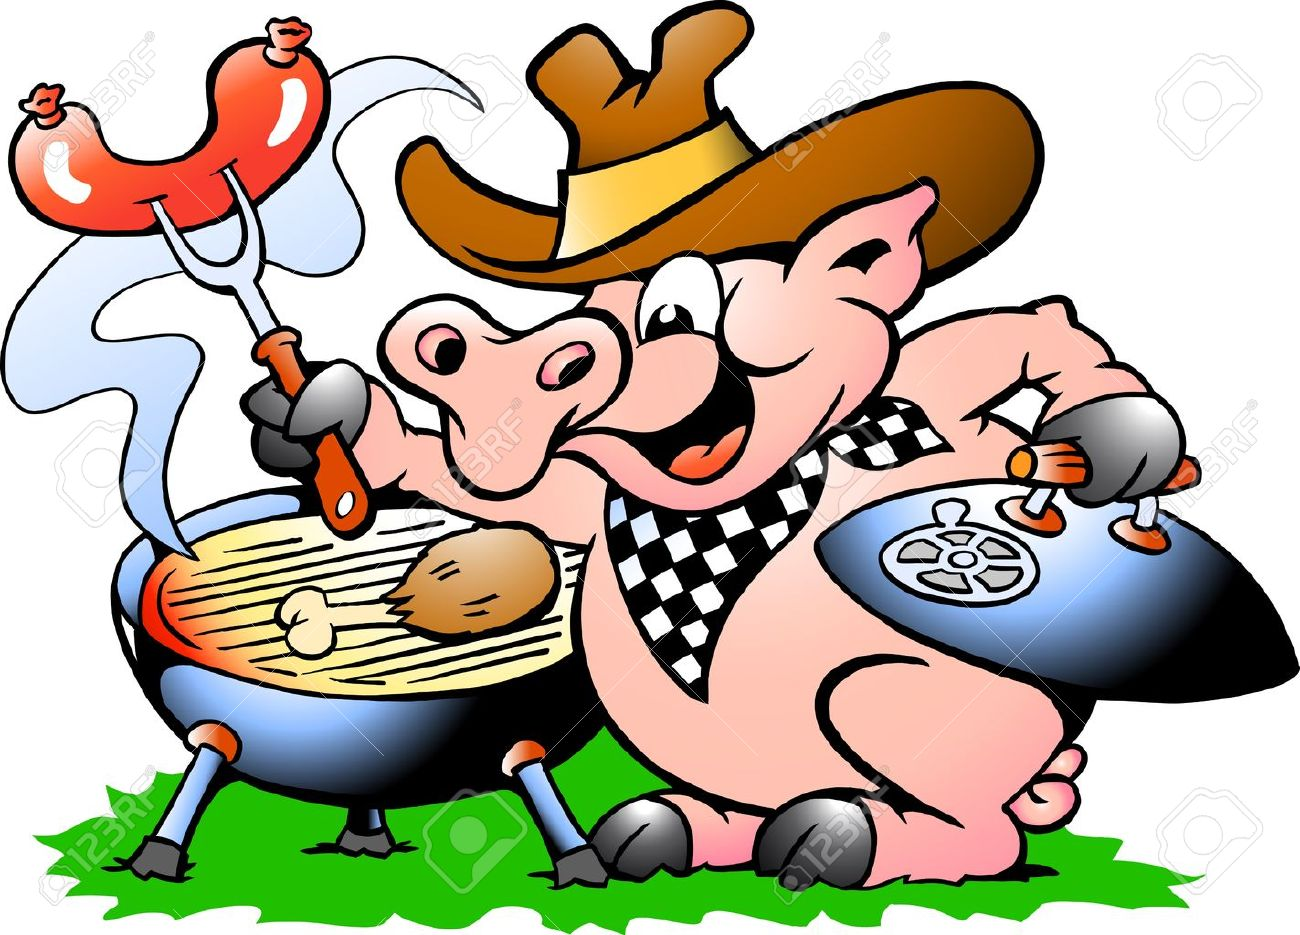 Animated bbq pigs